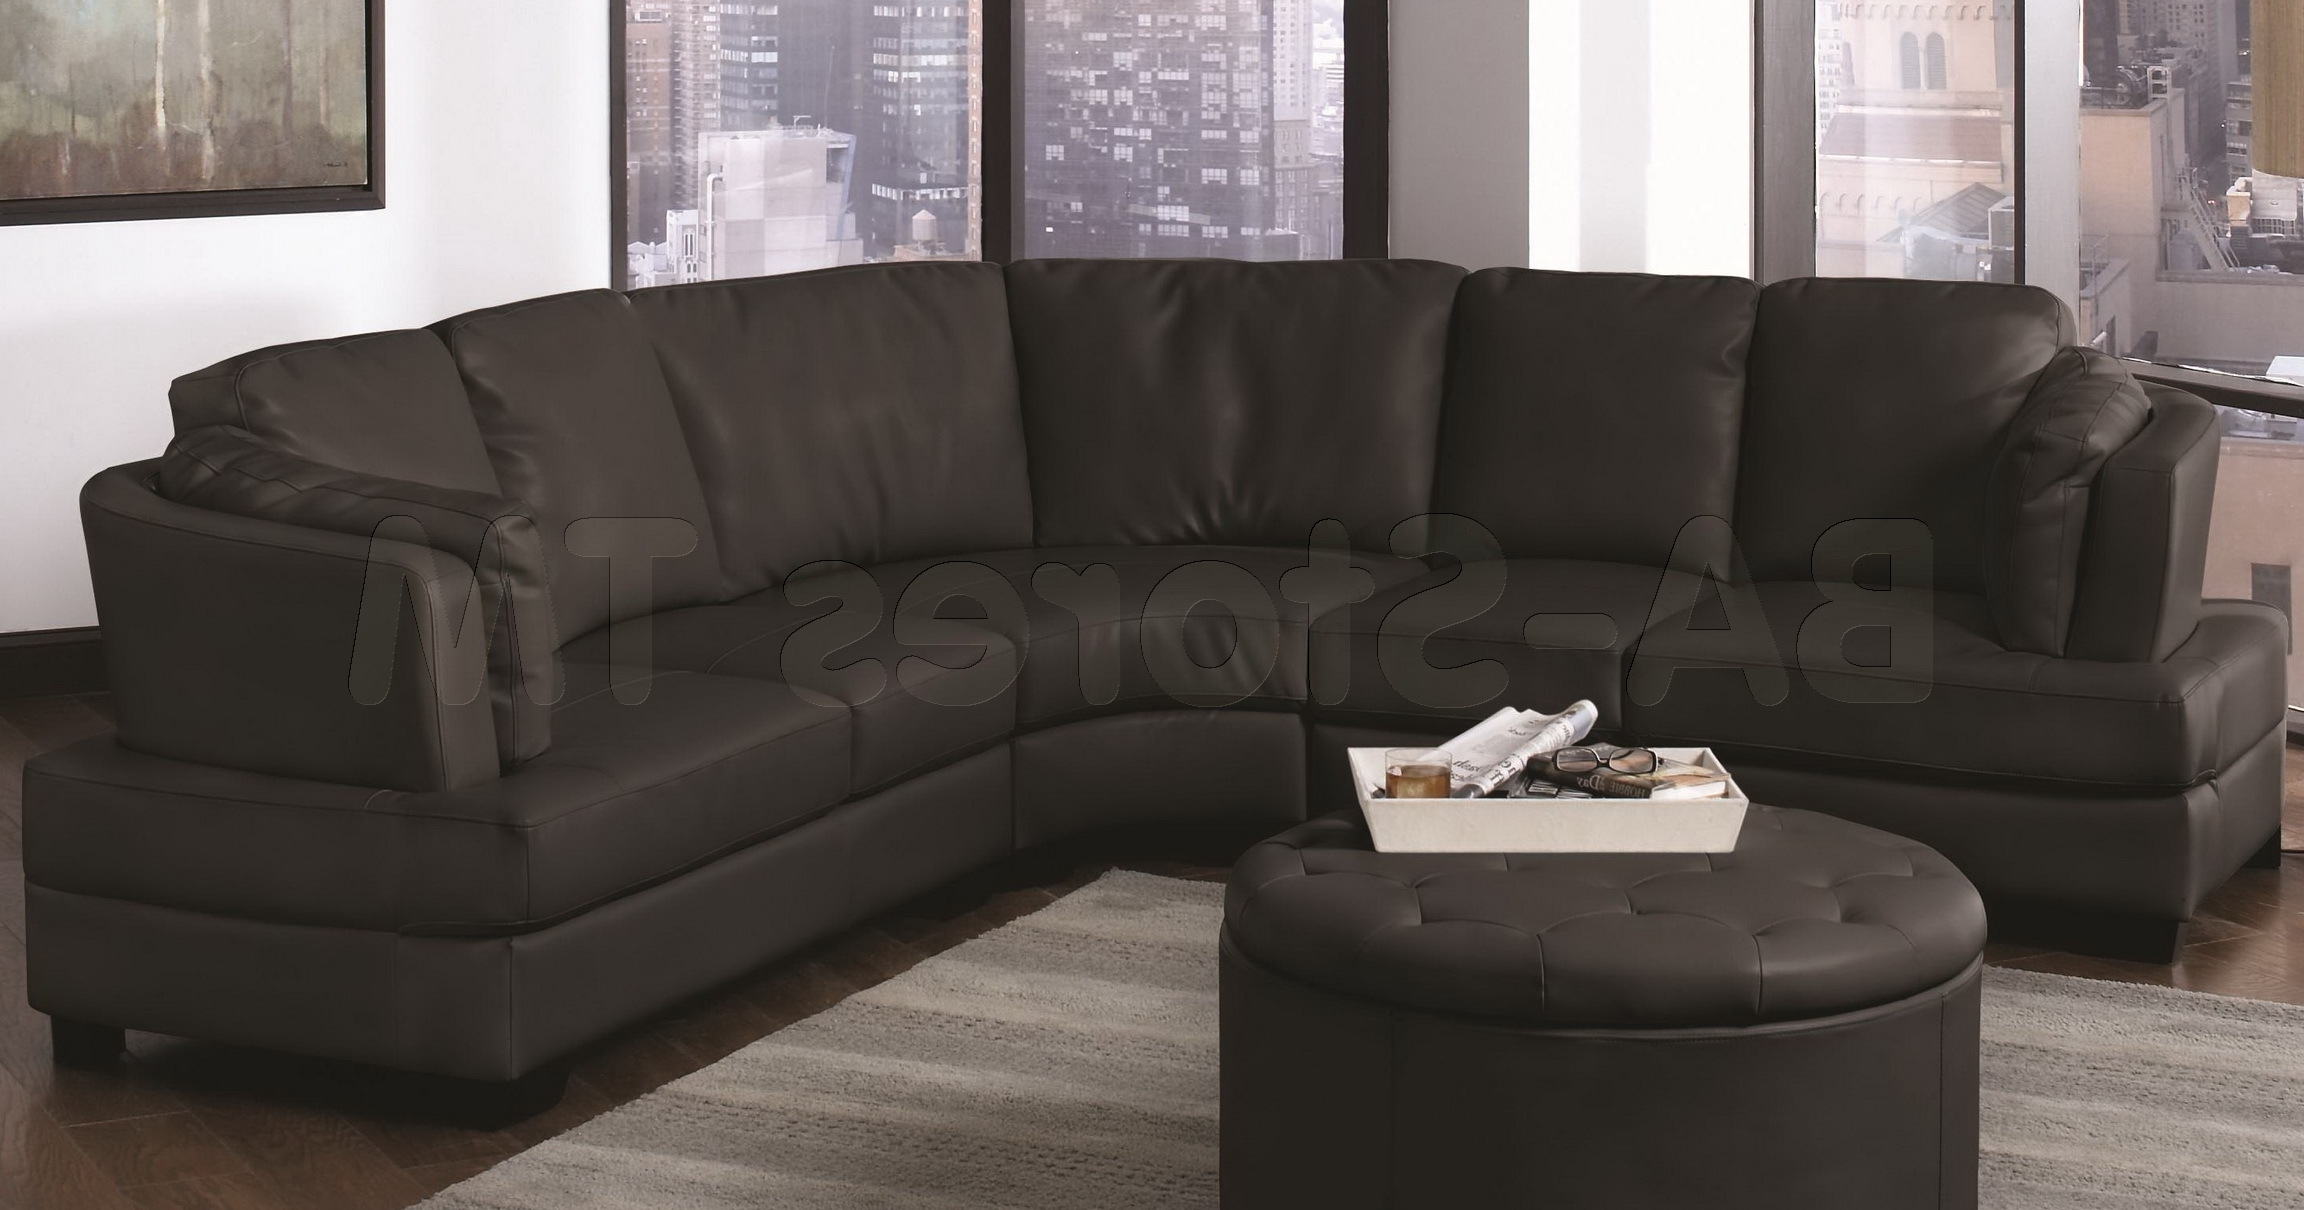 Recent Circular Sectional Sofas With Regard To Trend Circular Sectional Sofa 57 With Additional Living Room Sofa (View 18 of 20)